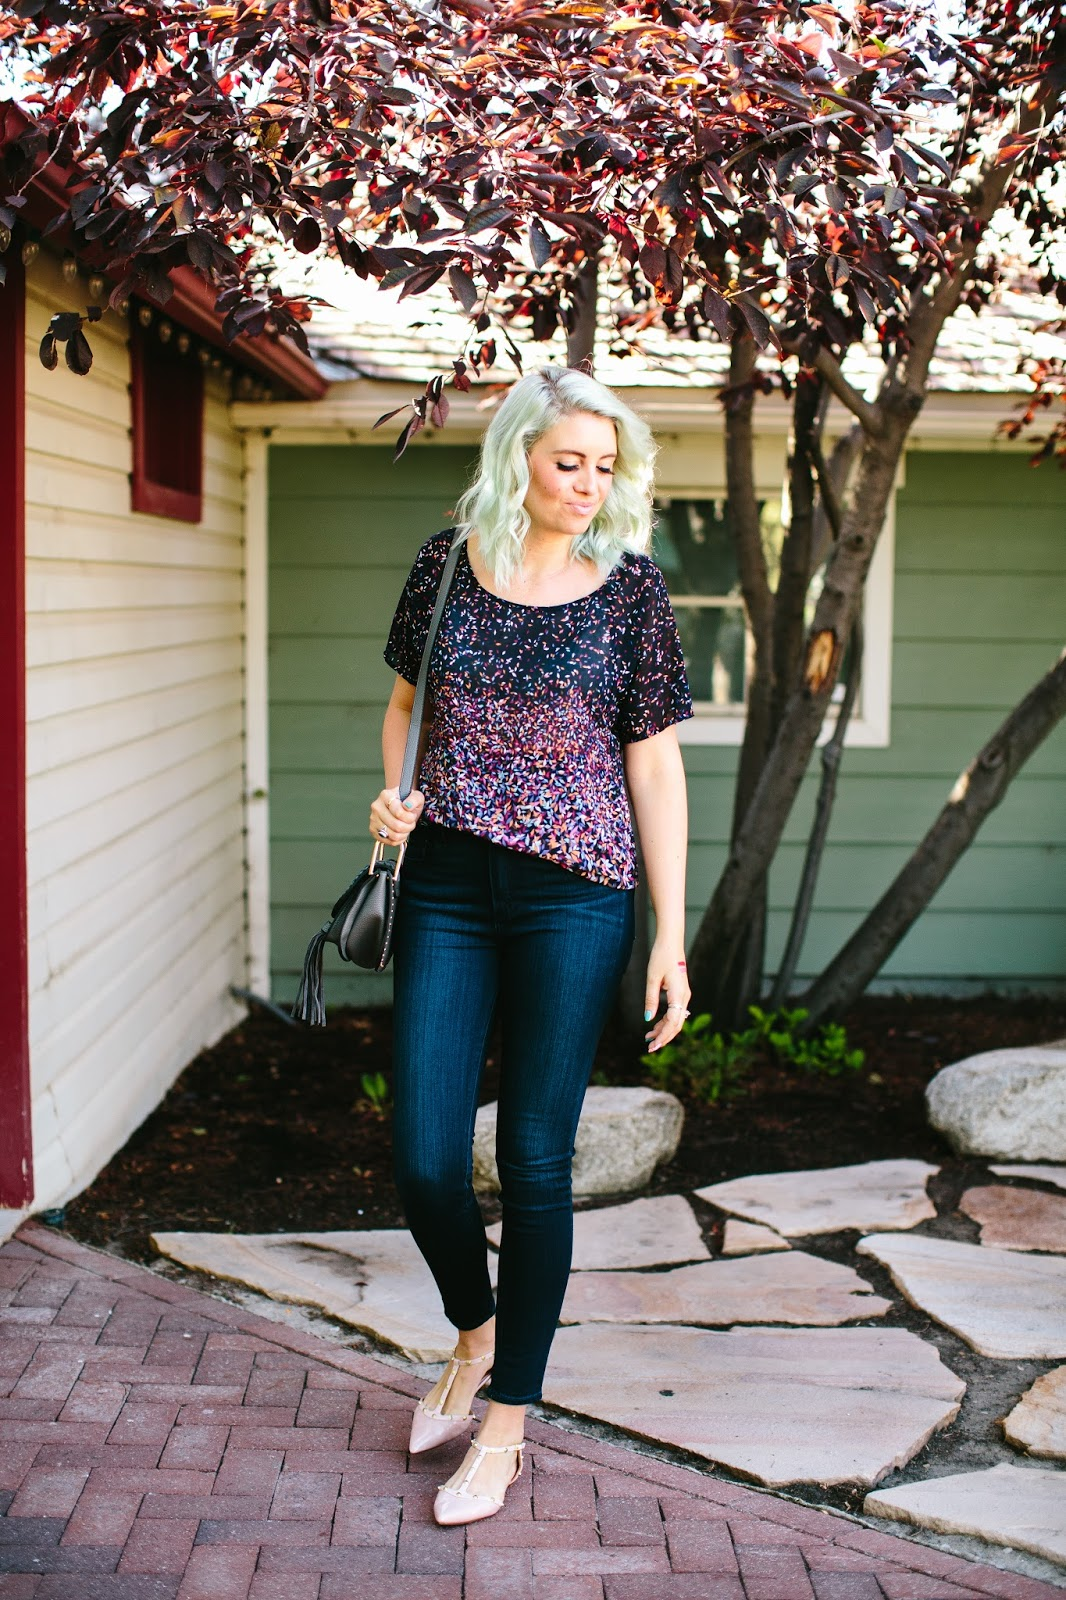 Le Tote, Clothing Subscription, Utah Fashion Blogger 8